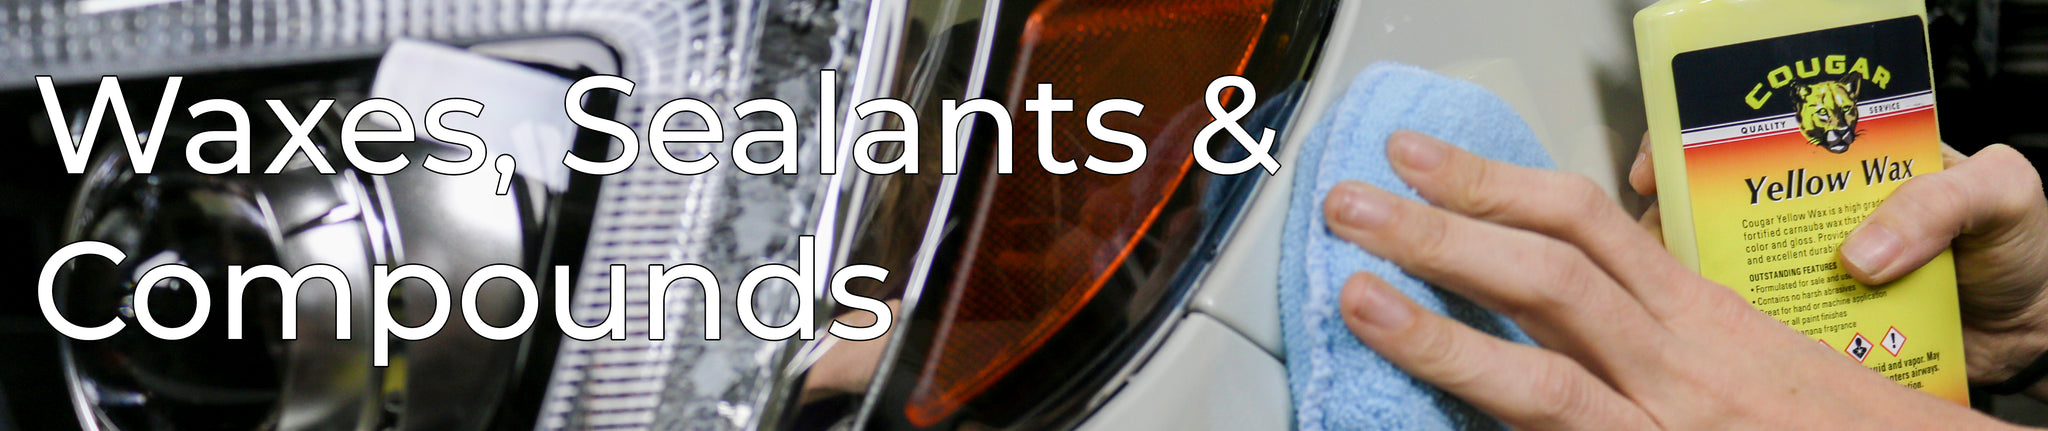 Waxes / Sealants, Compounds, Polishes & Coatings